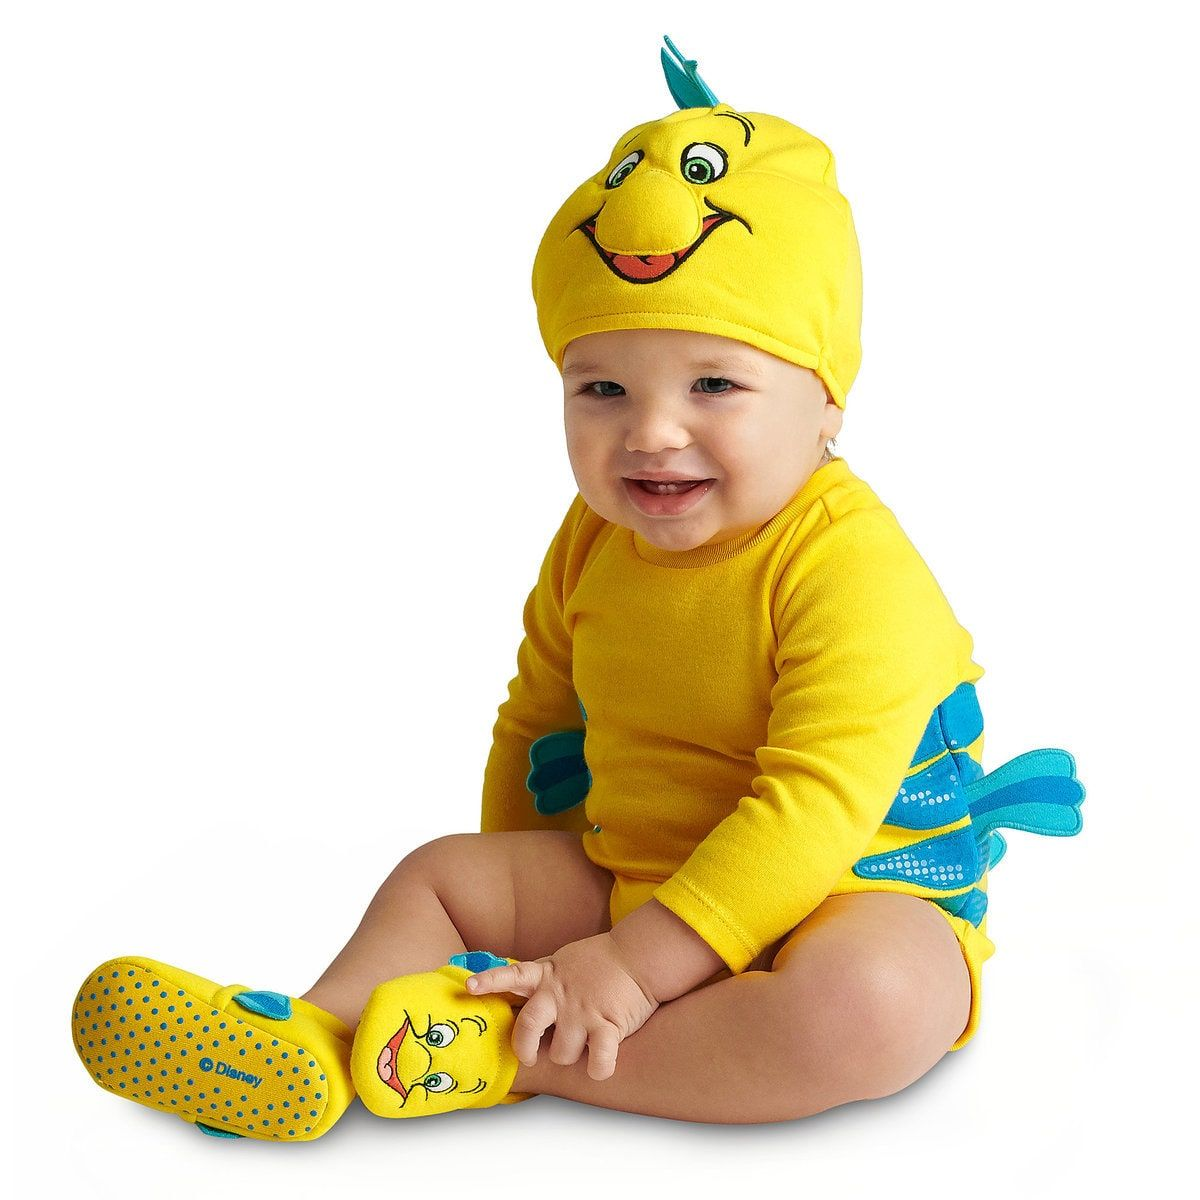 e3b6f8e35ded Flounder Costume Bodysuit Collection for Baby - The Little Mermaid ...